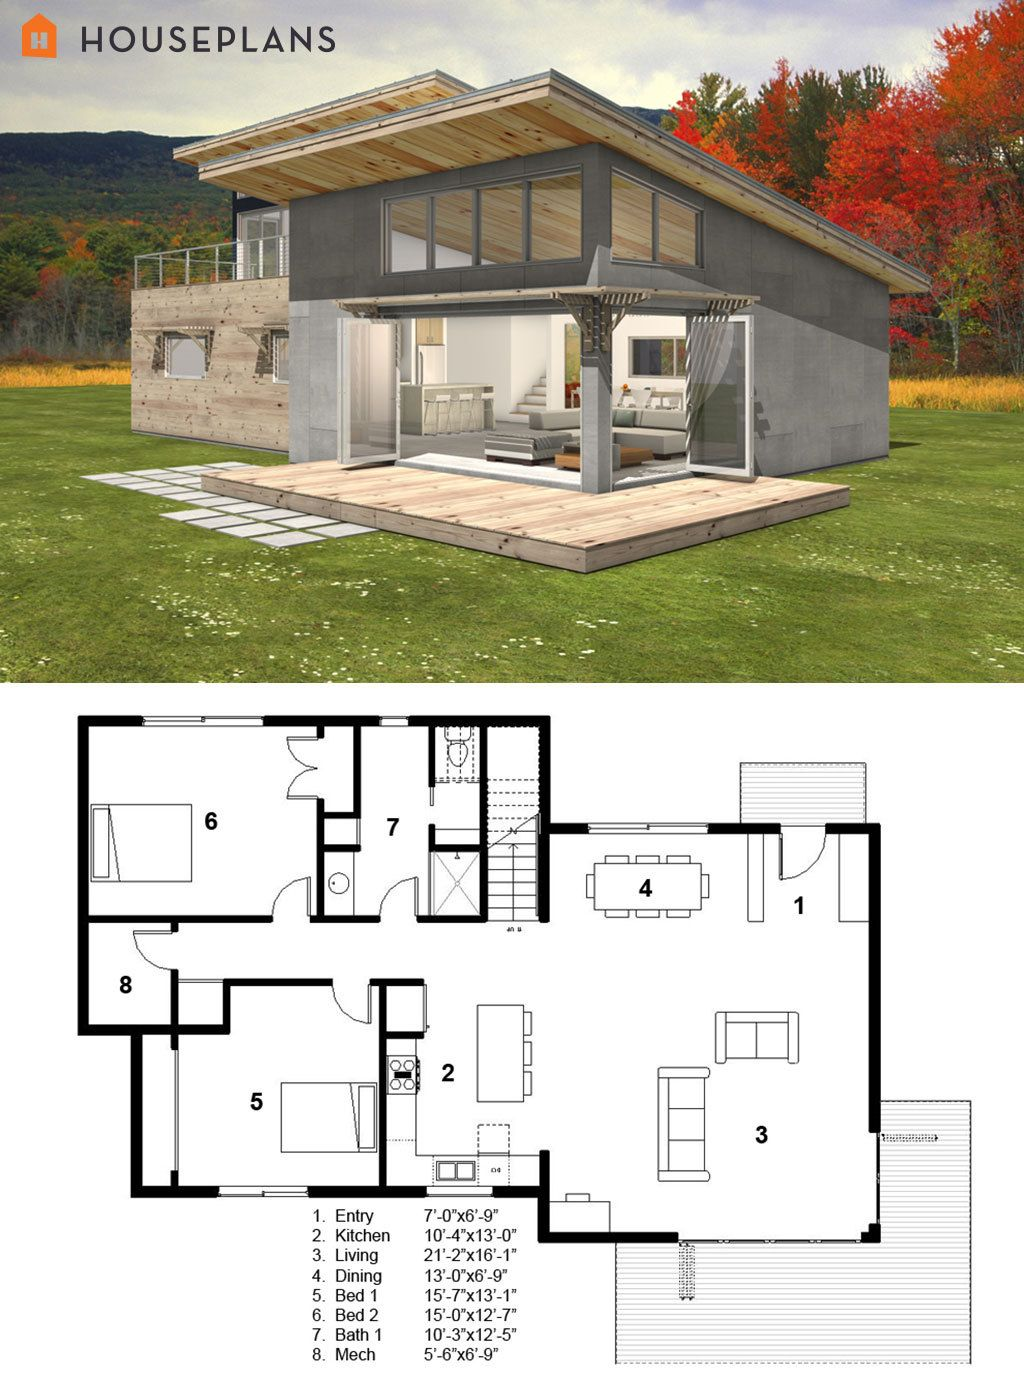 Modern style house plan 3 beds baths 2115 sq ft for 4 bedroom modern house plans